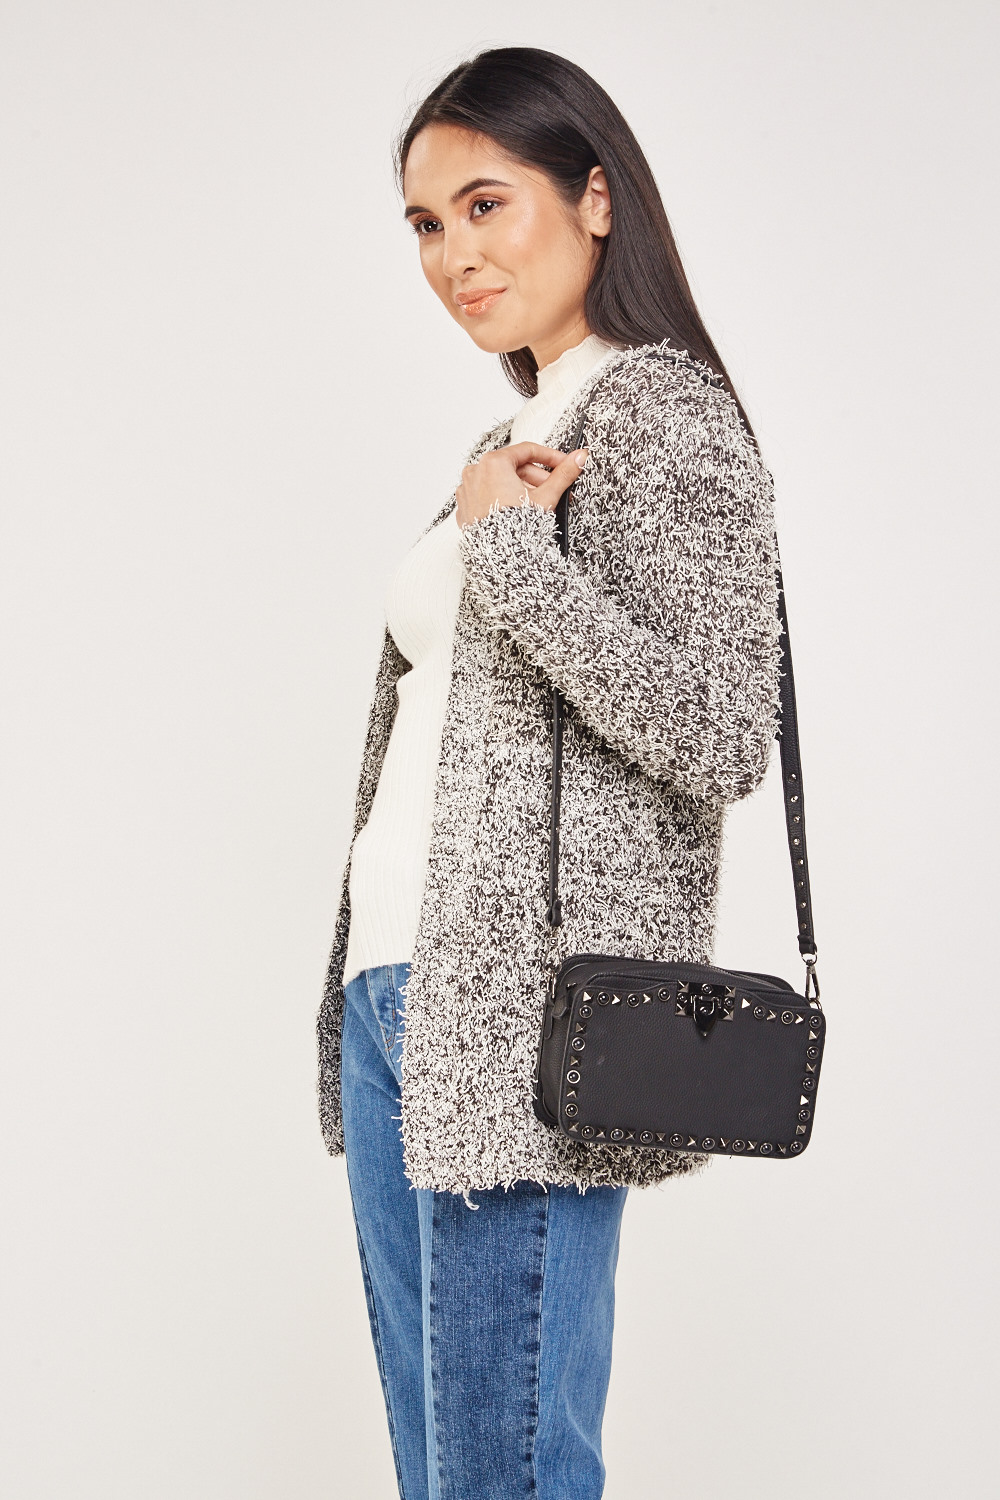 757d1346fad9 Speckled Eyelash Knit Cardigan - Black Off White - Just £5